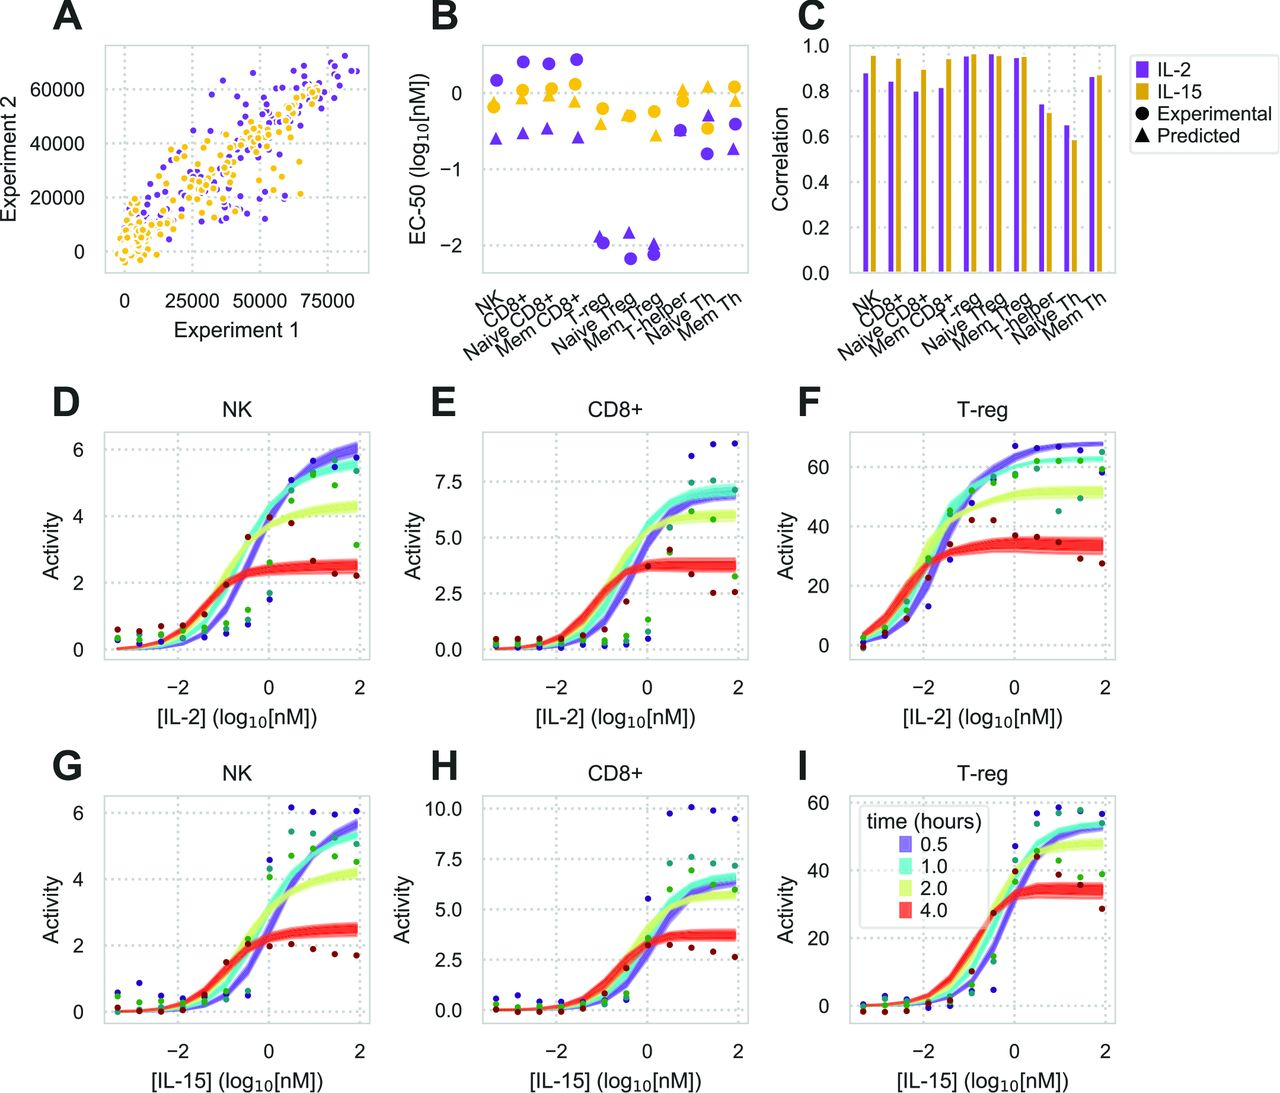 Model accurately predicts cell type-specific response across a panel of PBMC-derived cell types. A) Comparison of two replicates measuring pSTAT5 response to a dose-response of IL-2/-15, time course, and panel of PBMC-derived cell types. B) Both experimentally-derived and model-predicted EC 50 s of dose response across IL-2/-15 and all 10 cell types. EC 50 s are shown for 1 hr time point. C) Pearson correlation coefficients between model prediction and experimental measurements for all 10 cell populations (full data shown in Fig. S5 ). D–I) pSTAT5 response to IL-2 (D-F) or IL-15 (G-I) dose responses in NK, CD8+, and T reg cells.